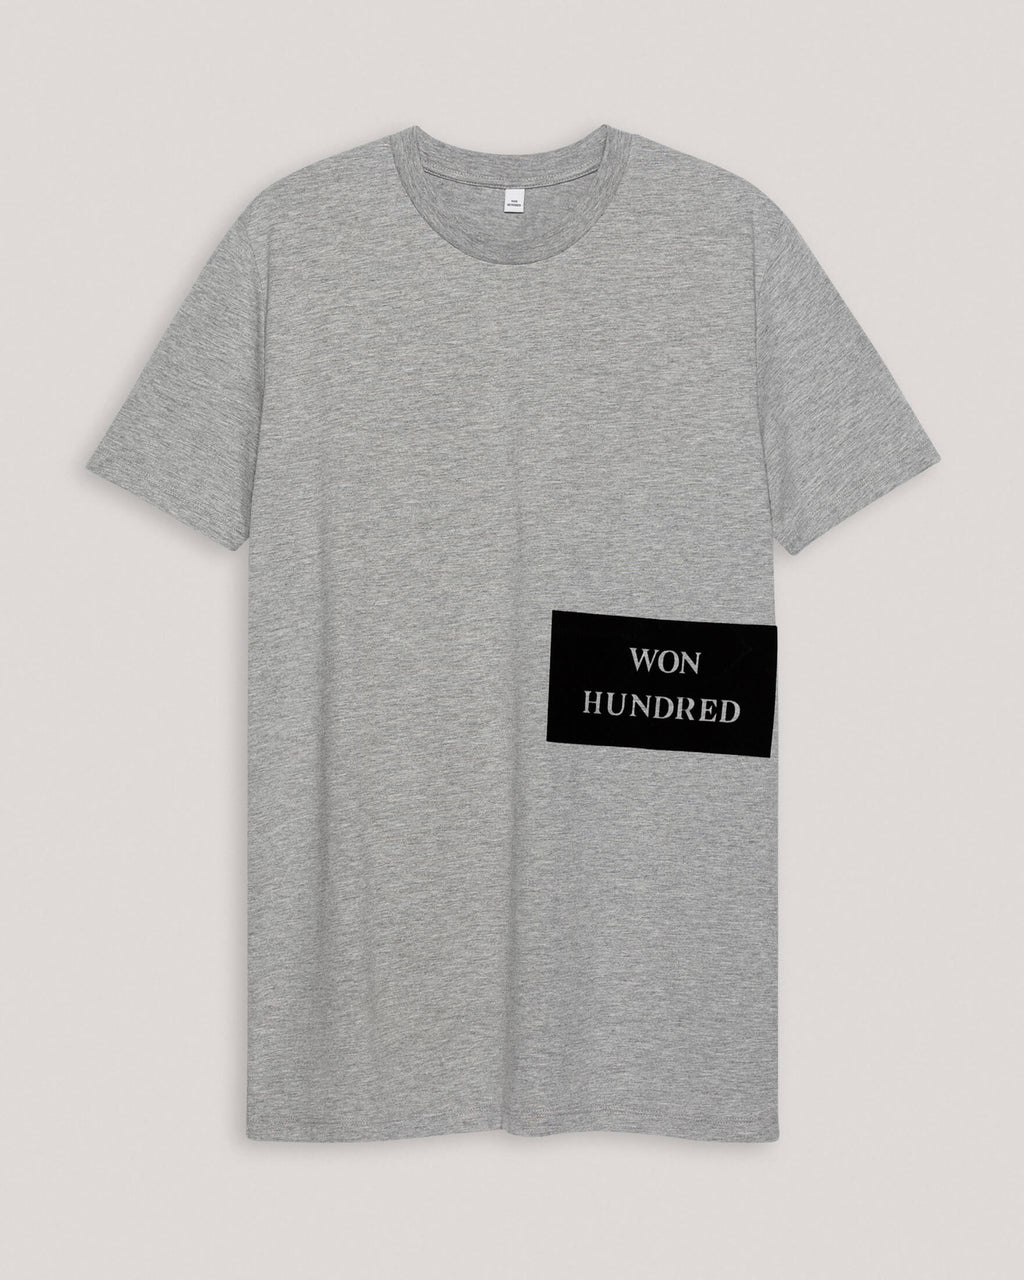 variant_1 | EN Shirt Grey with Print Men won hundred | DE T-Shirt Grau mit Print Herren won hundred